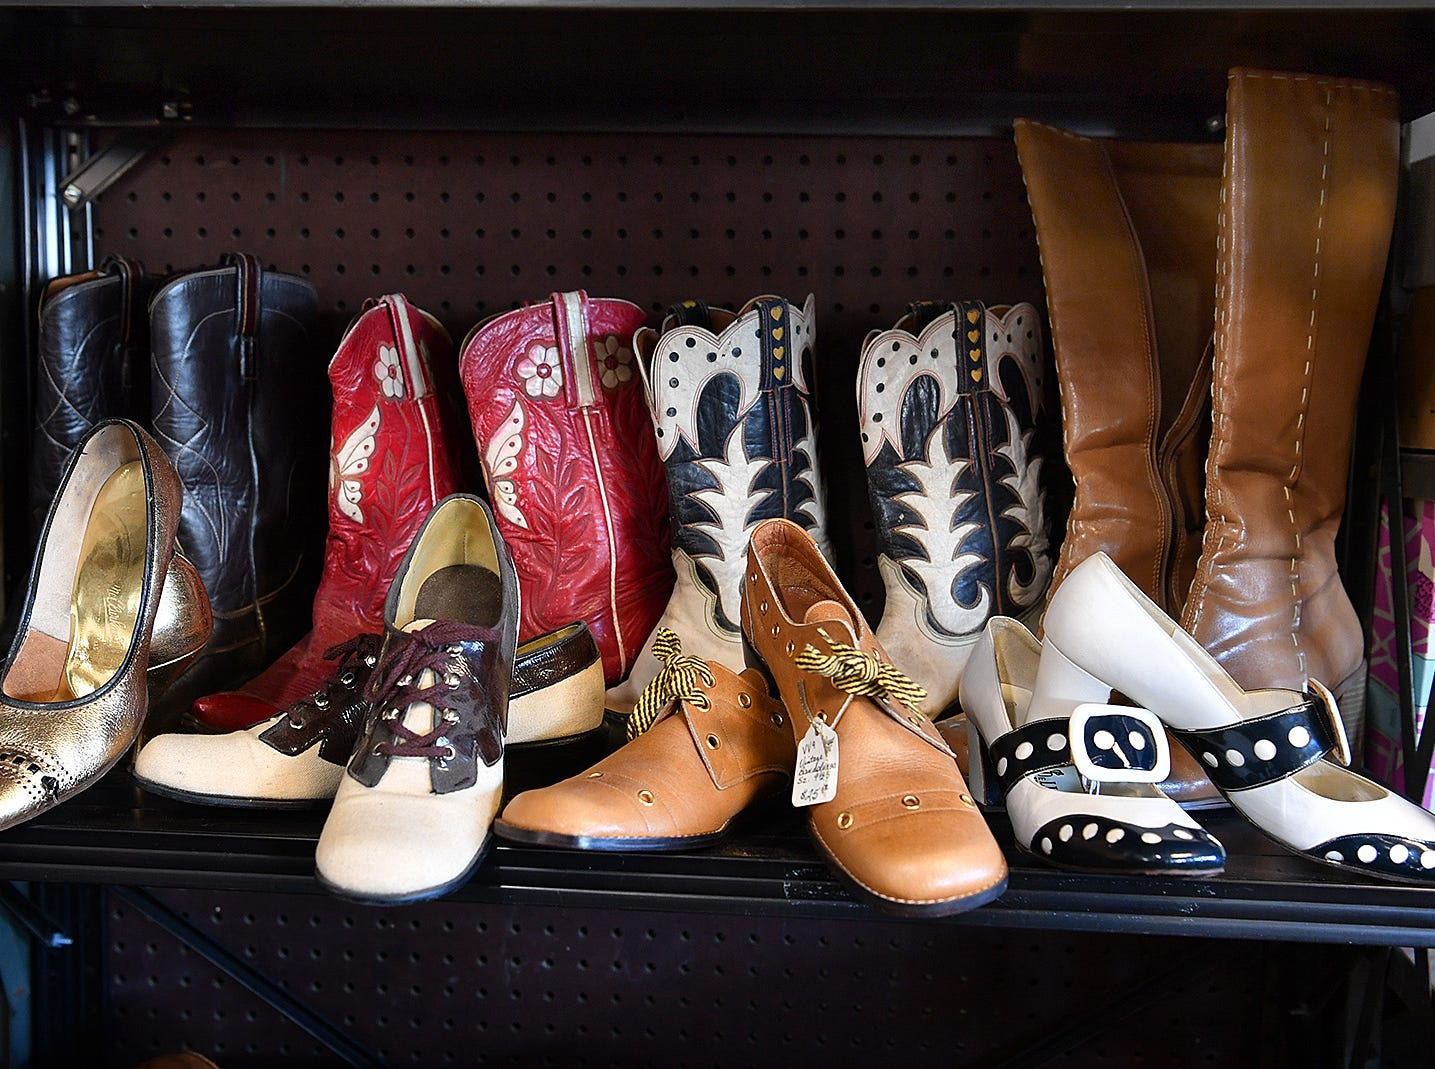 A display of shoes and boots at Fashion Garage, a retro and vintage fashions boutique in the building of the former Gragg Motor Company car lot.